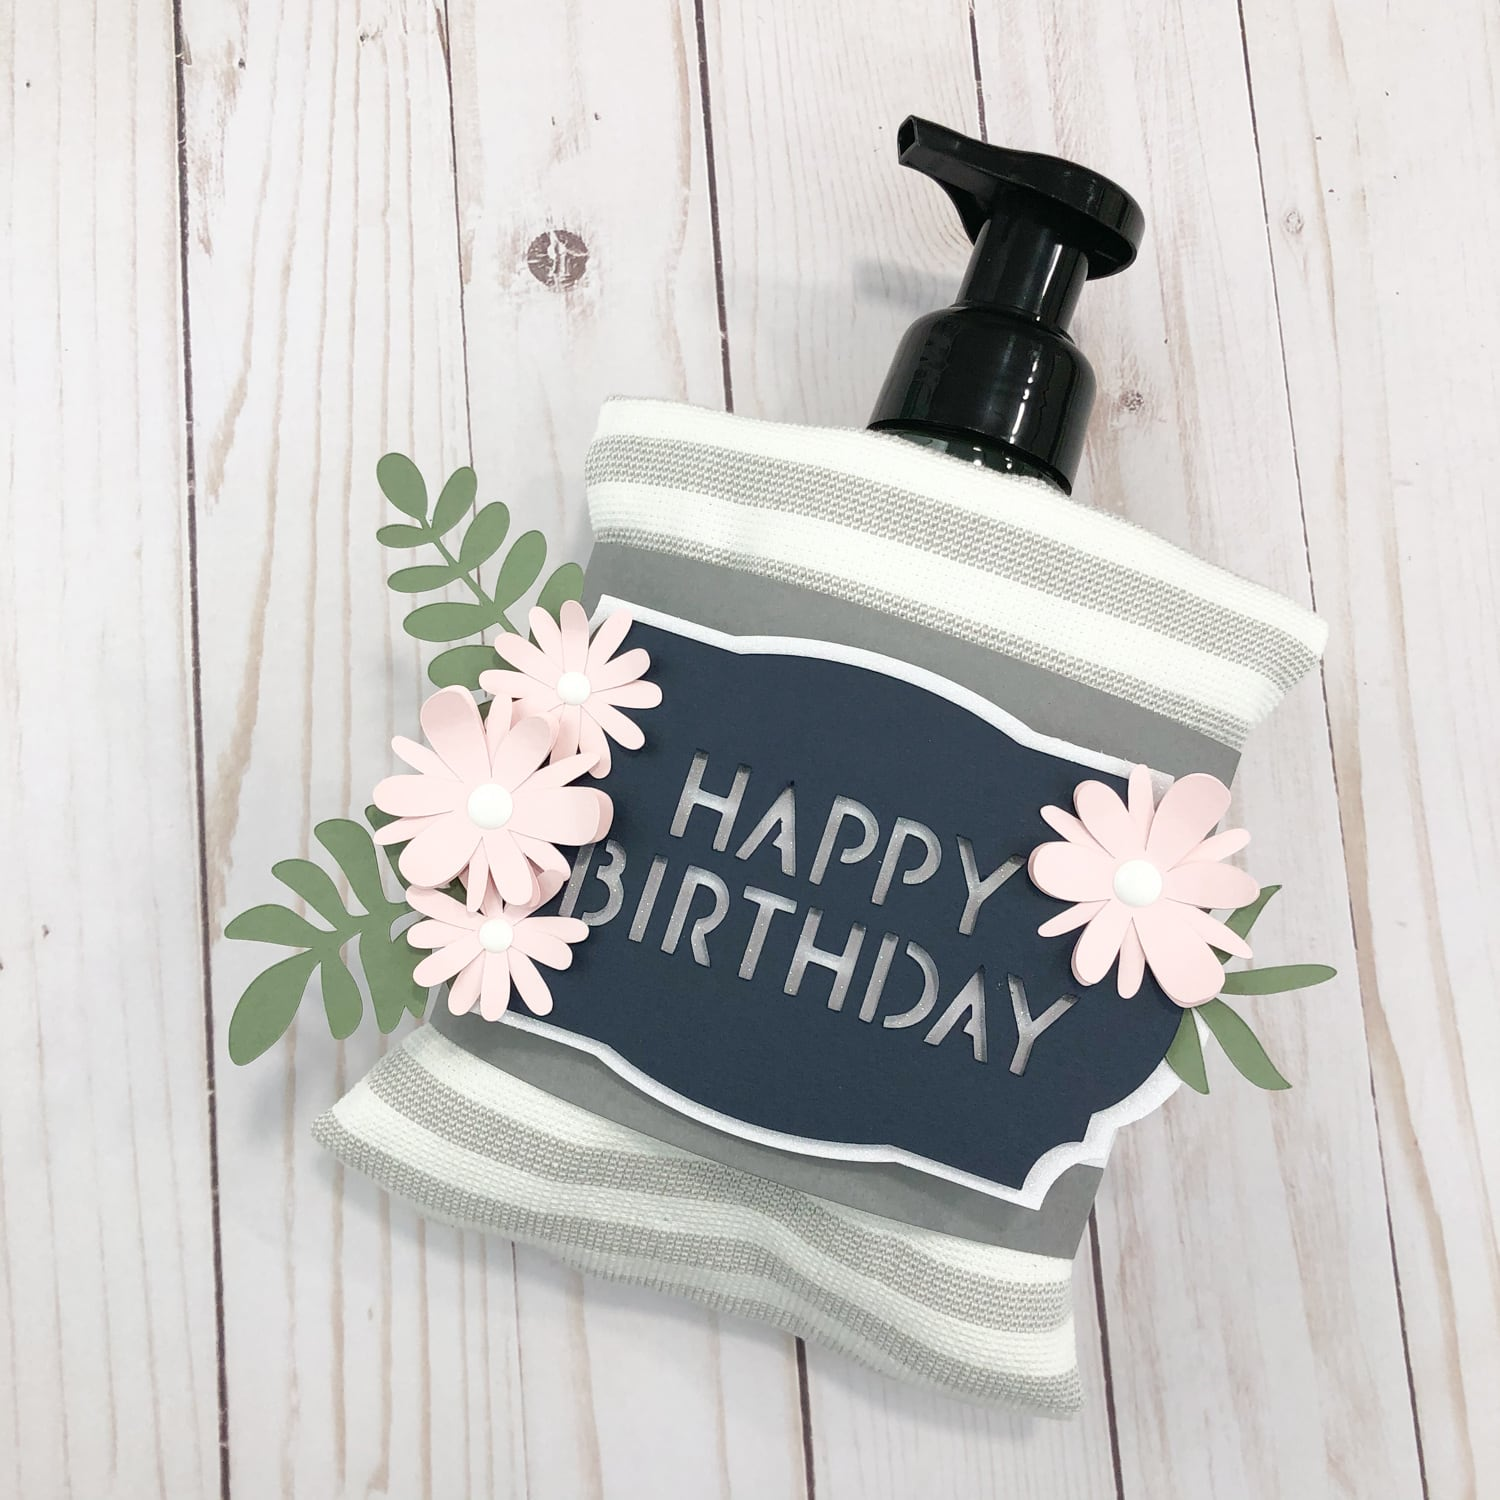 happy birthday gift wrapper with soap and towel